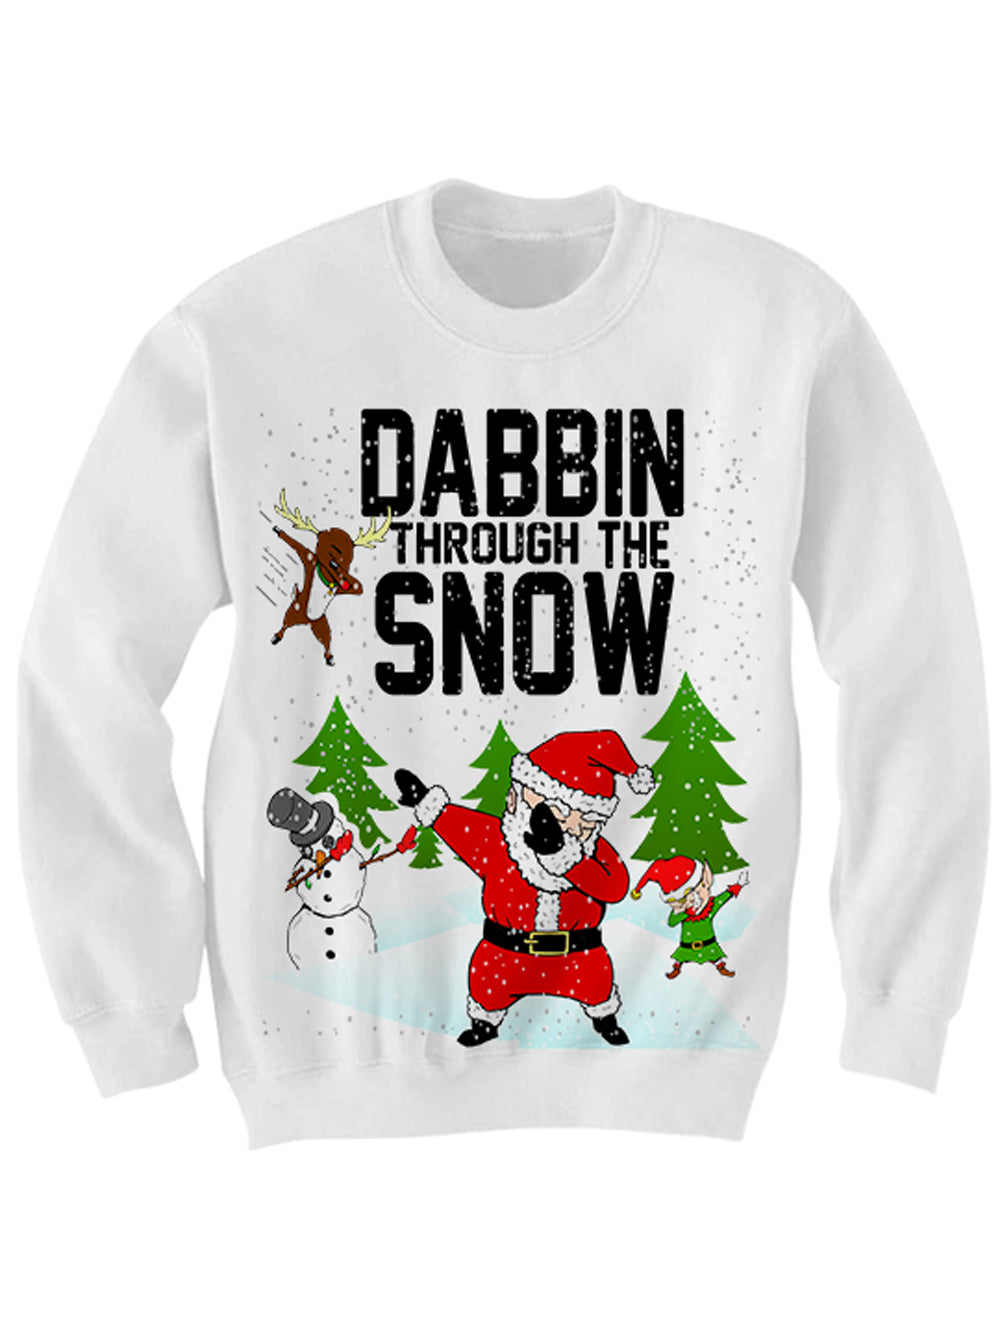 Christmas Sweaters Cute.Dabbing Through The Snow Christmas Sweater